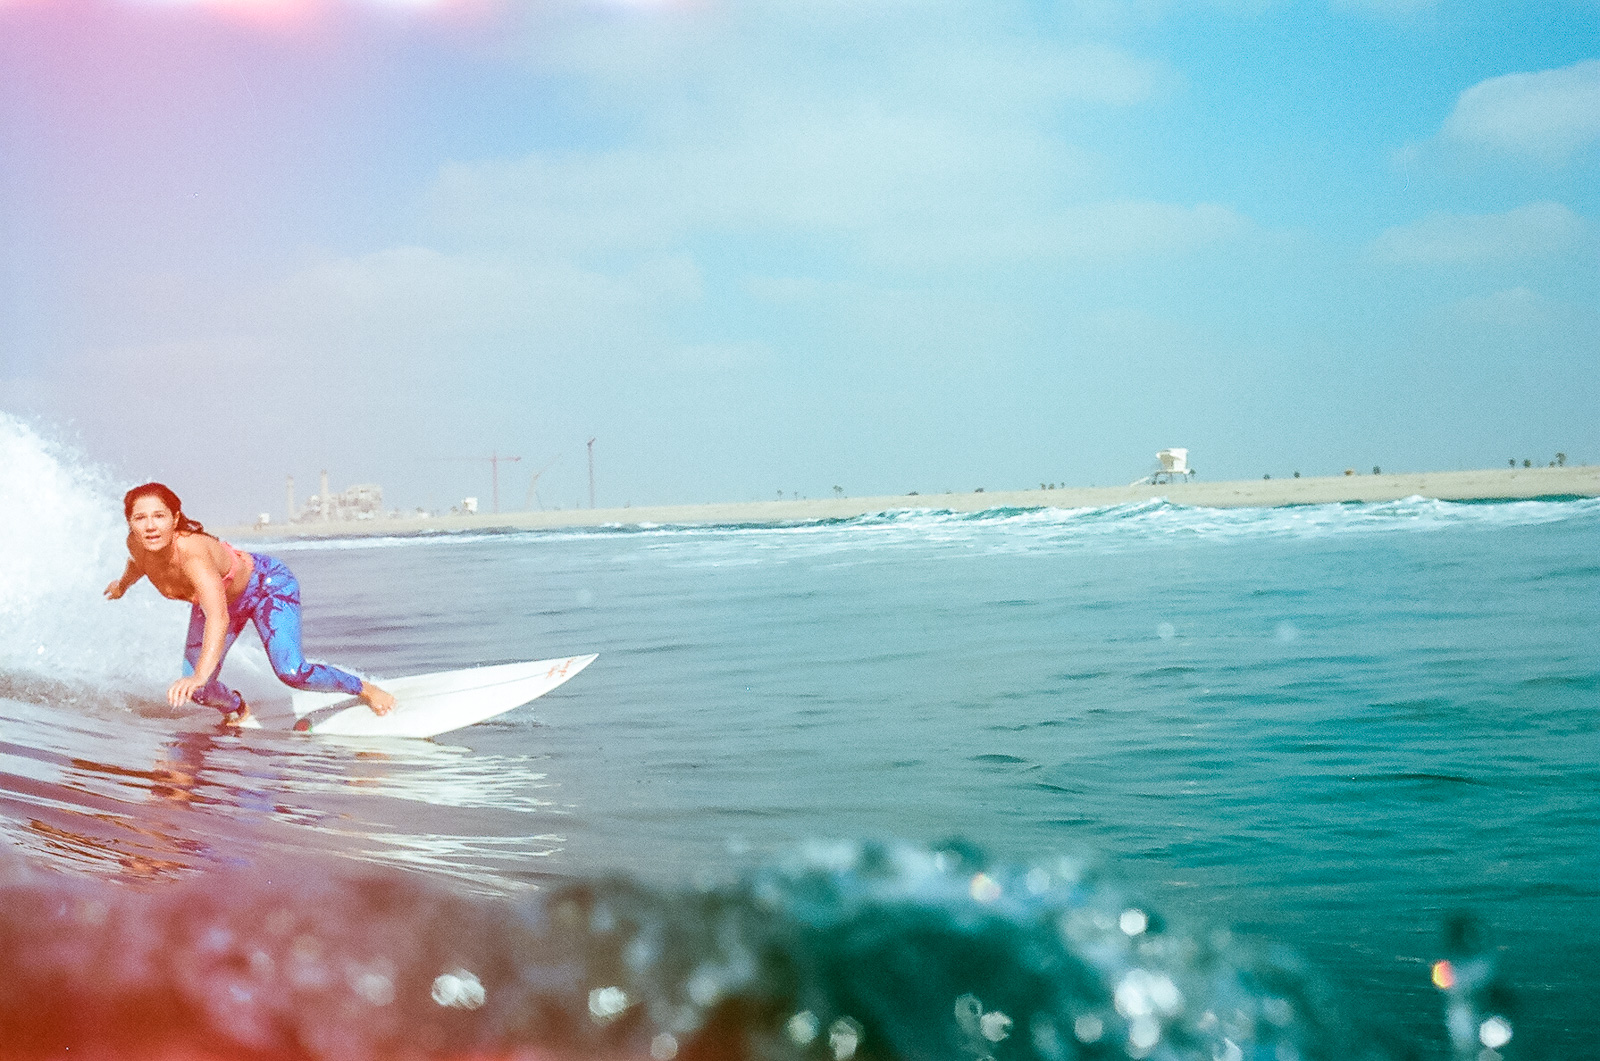 35mm color film Surfing photo shoot in the water at Huntington State Beach with girl surfer surfing  for Get wise fool eco-friendly surf company